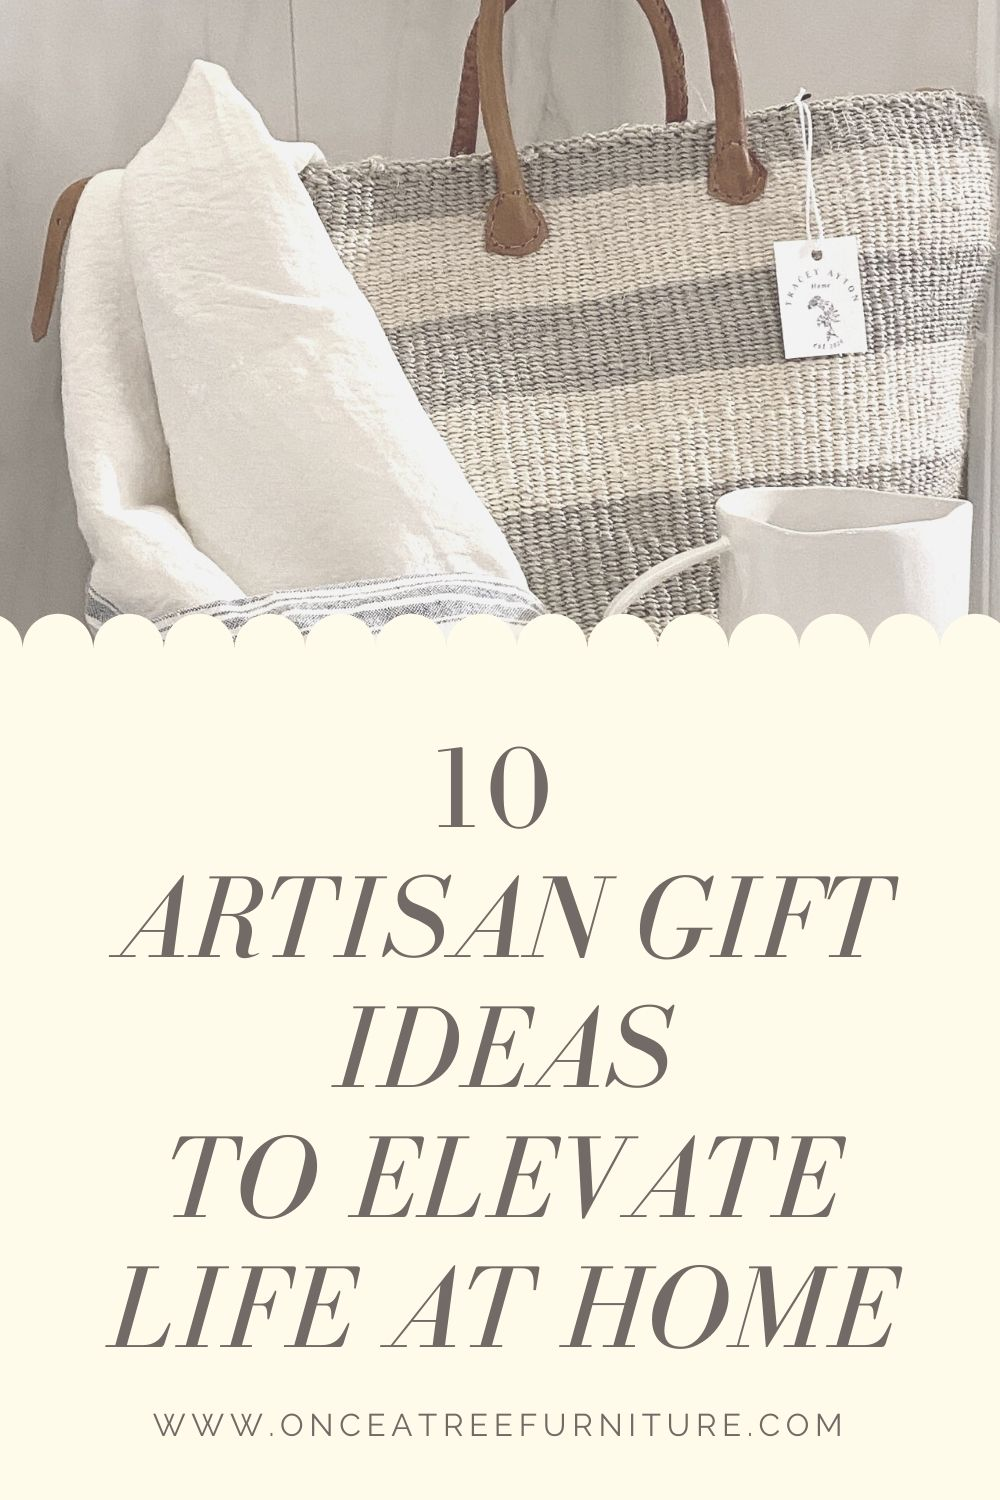 10 Artisan Gift Ideas to Elevate Life at Home